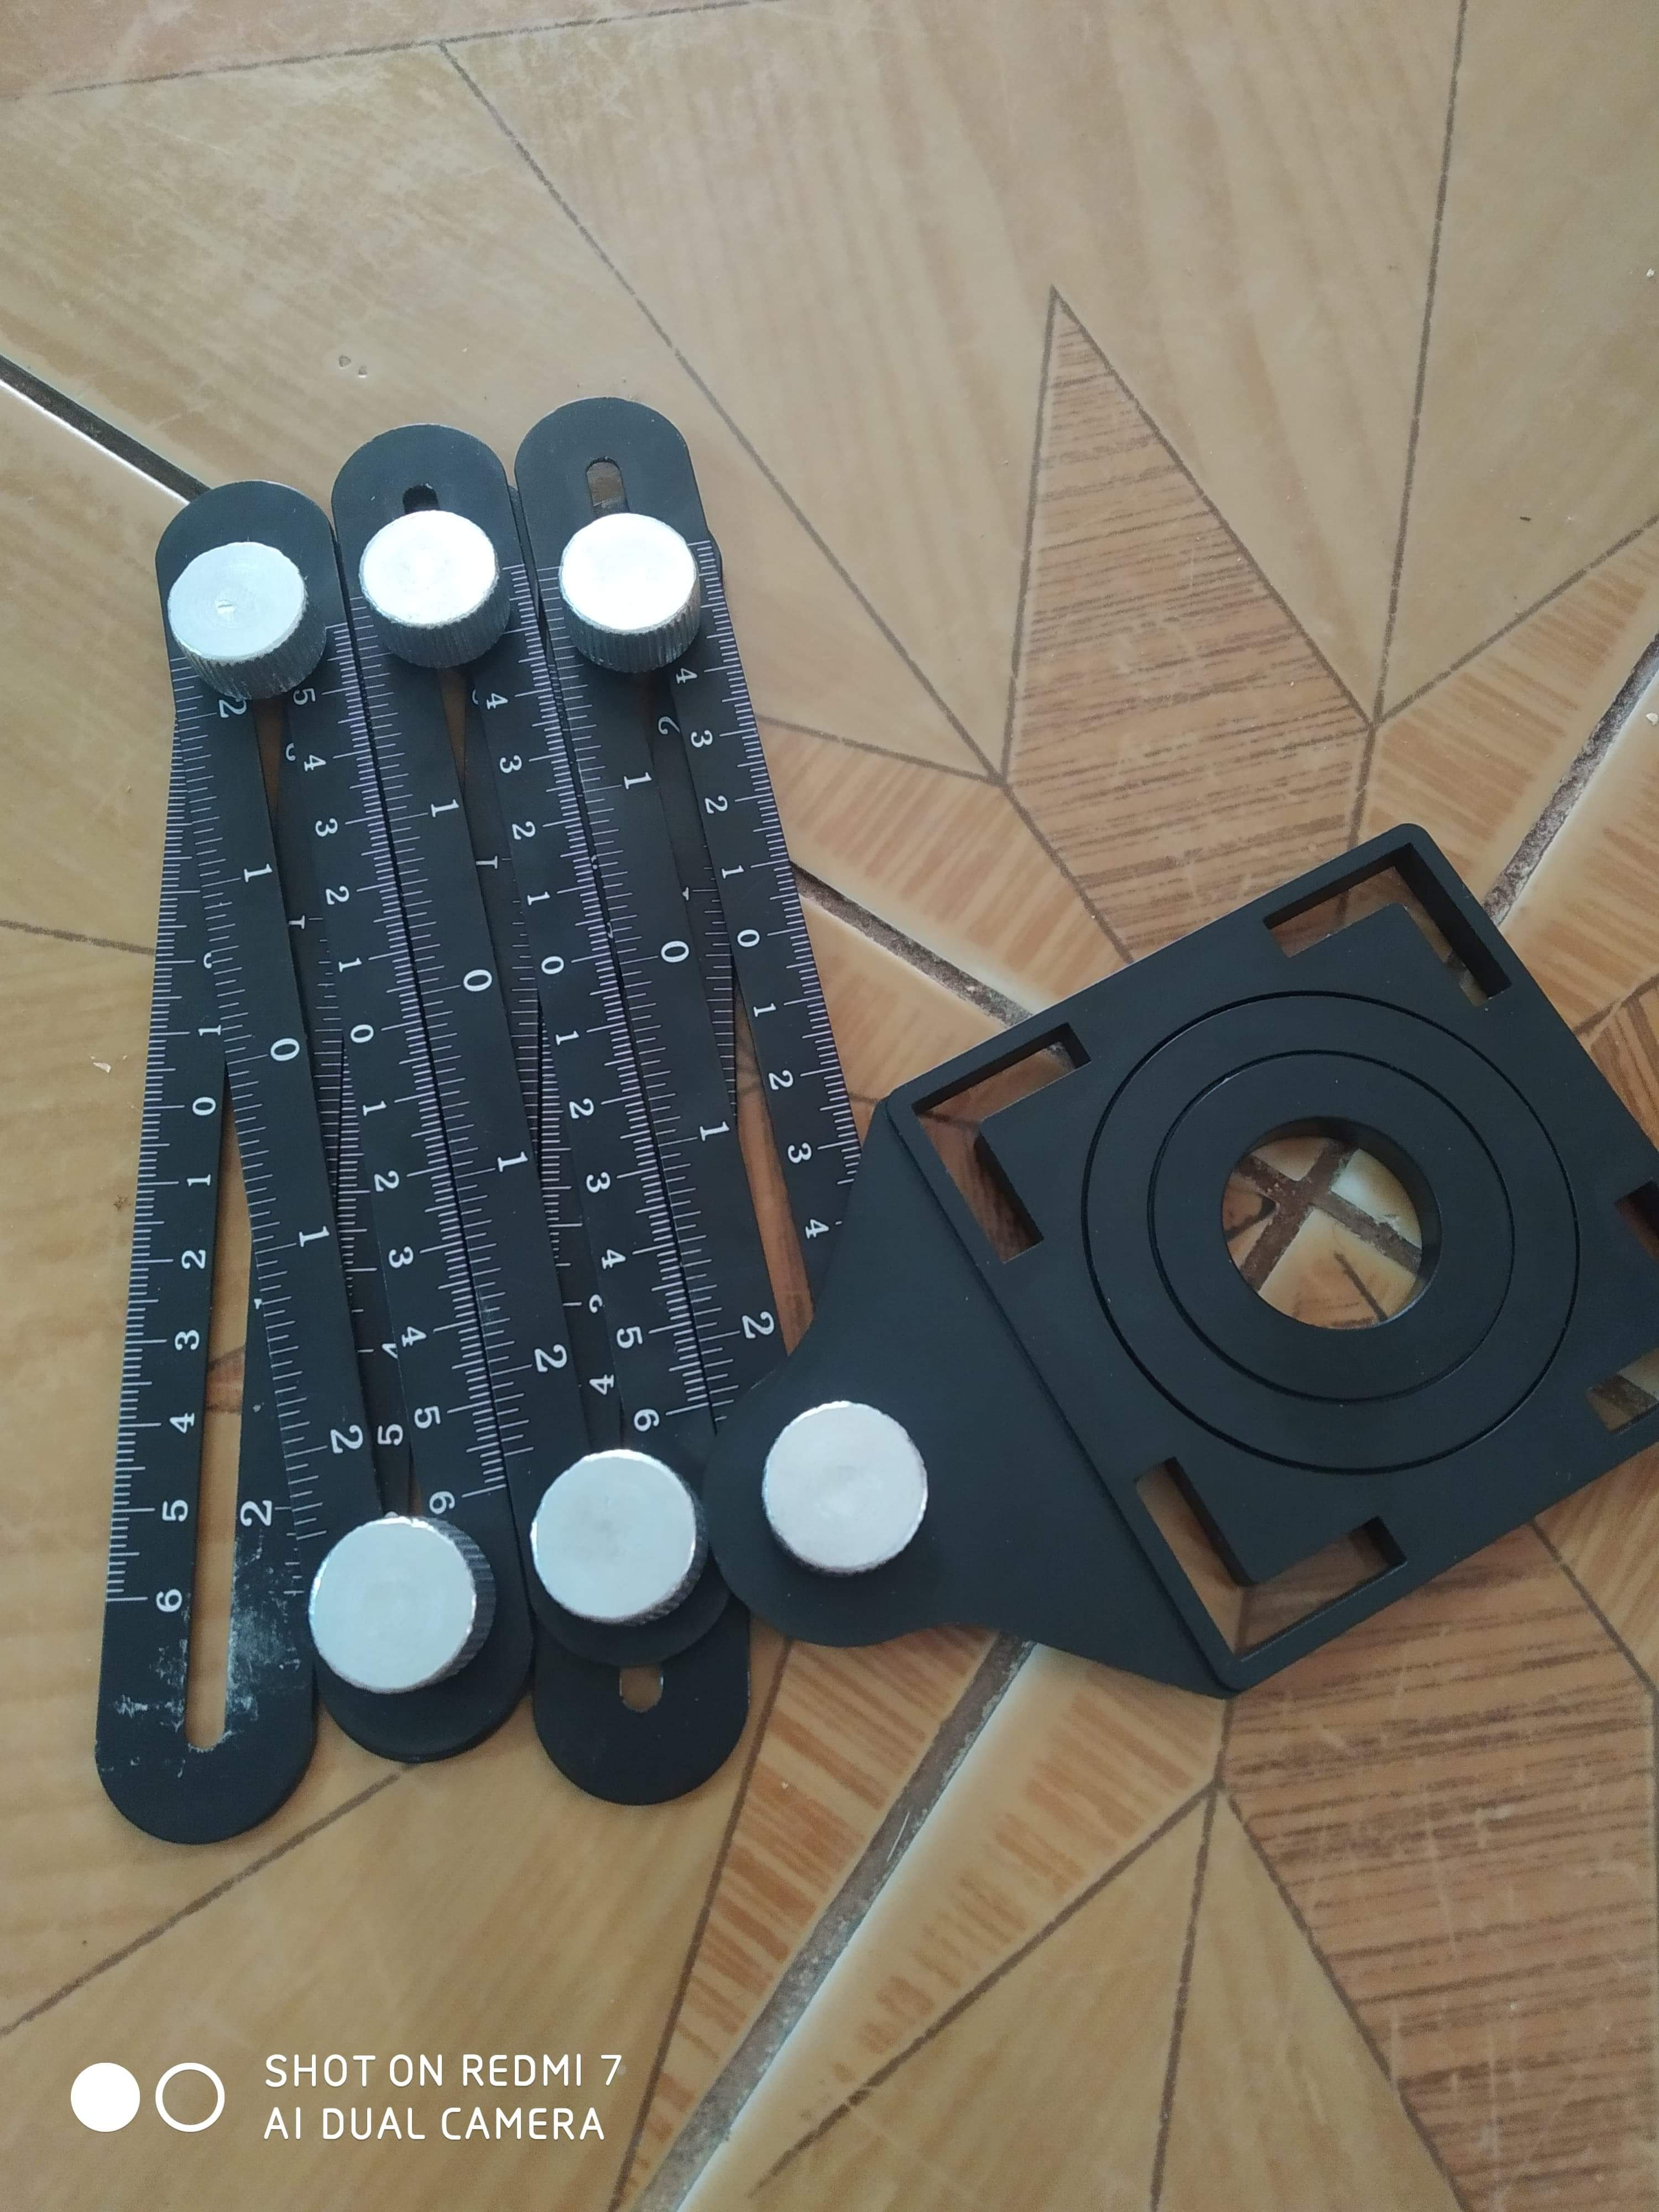 Multi-Angle Measuring Ruler Six-Sided With Hole Locator photo review